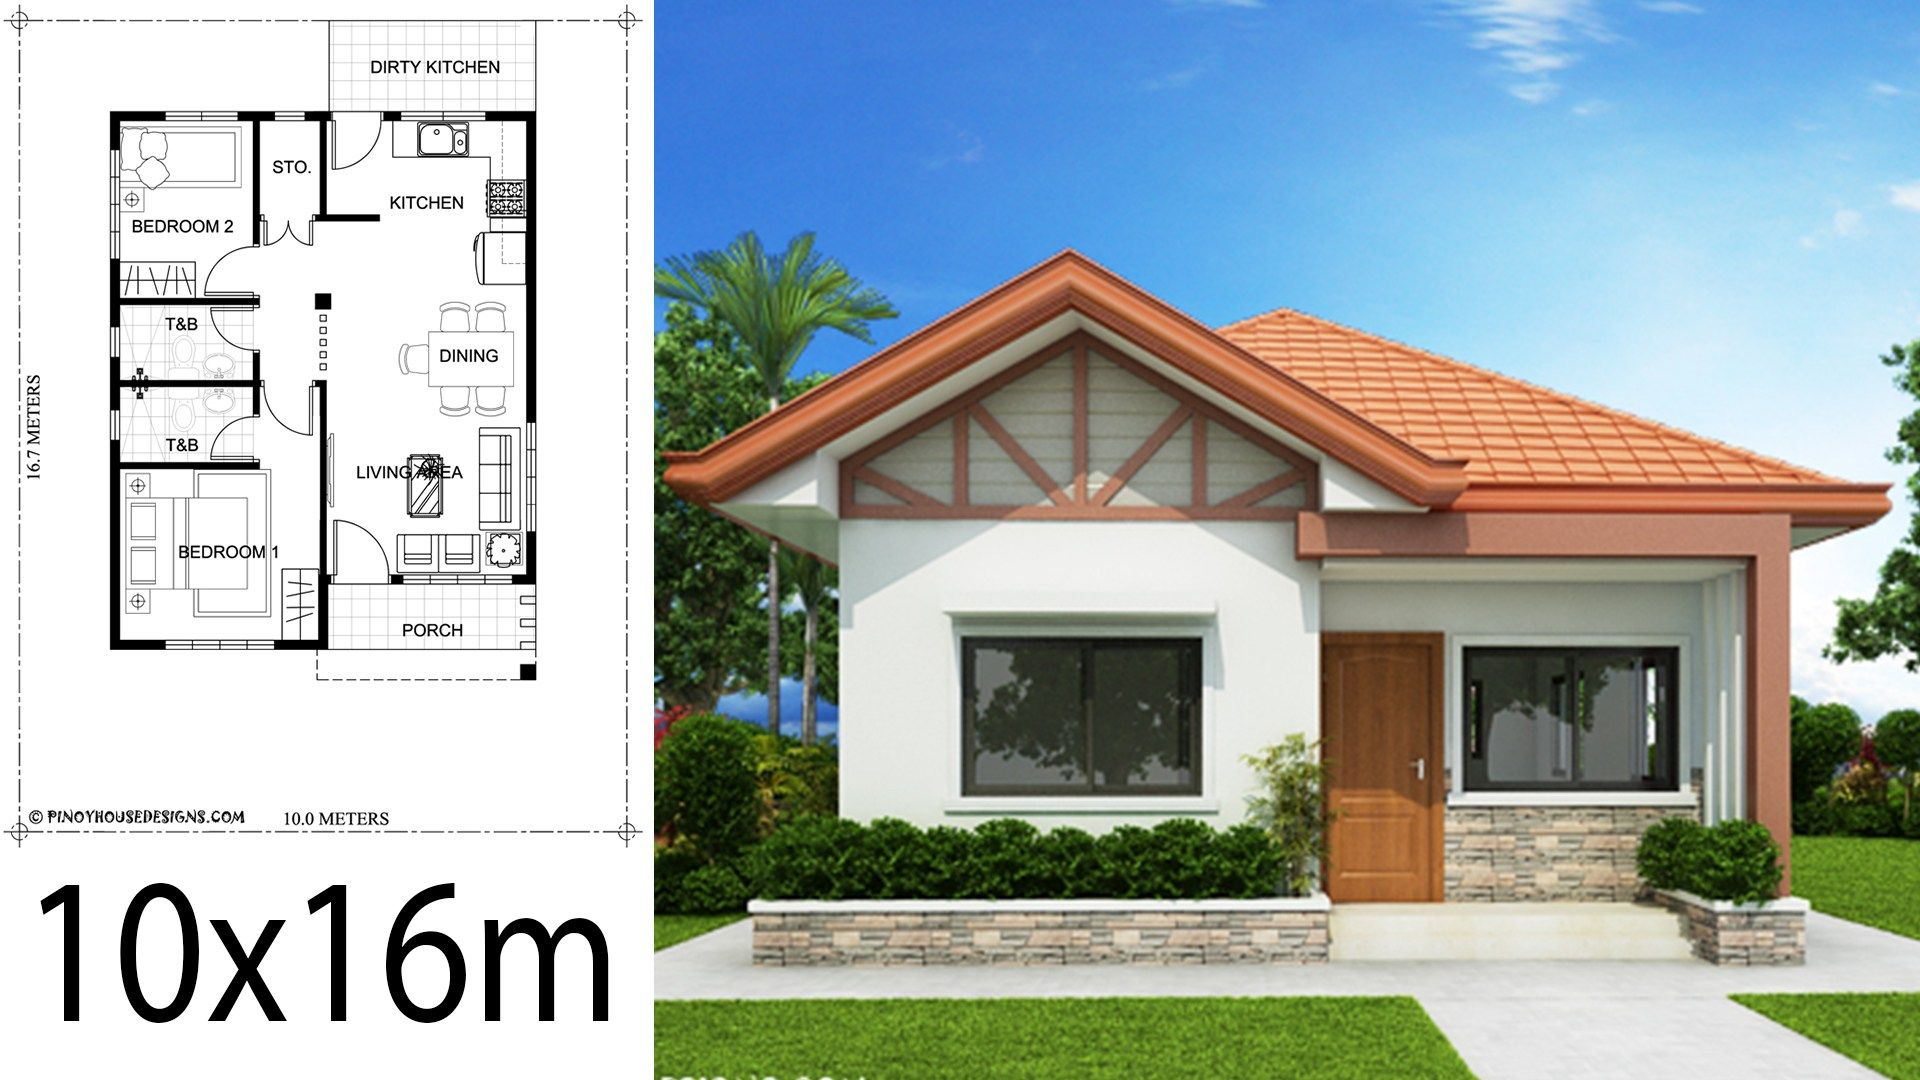 Home Design Plan 10x16m With 2 Bedrooms House Description One Car Parking And Garden Gr Small House Design Plans Affordable House Plans Bungalow House Design